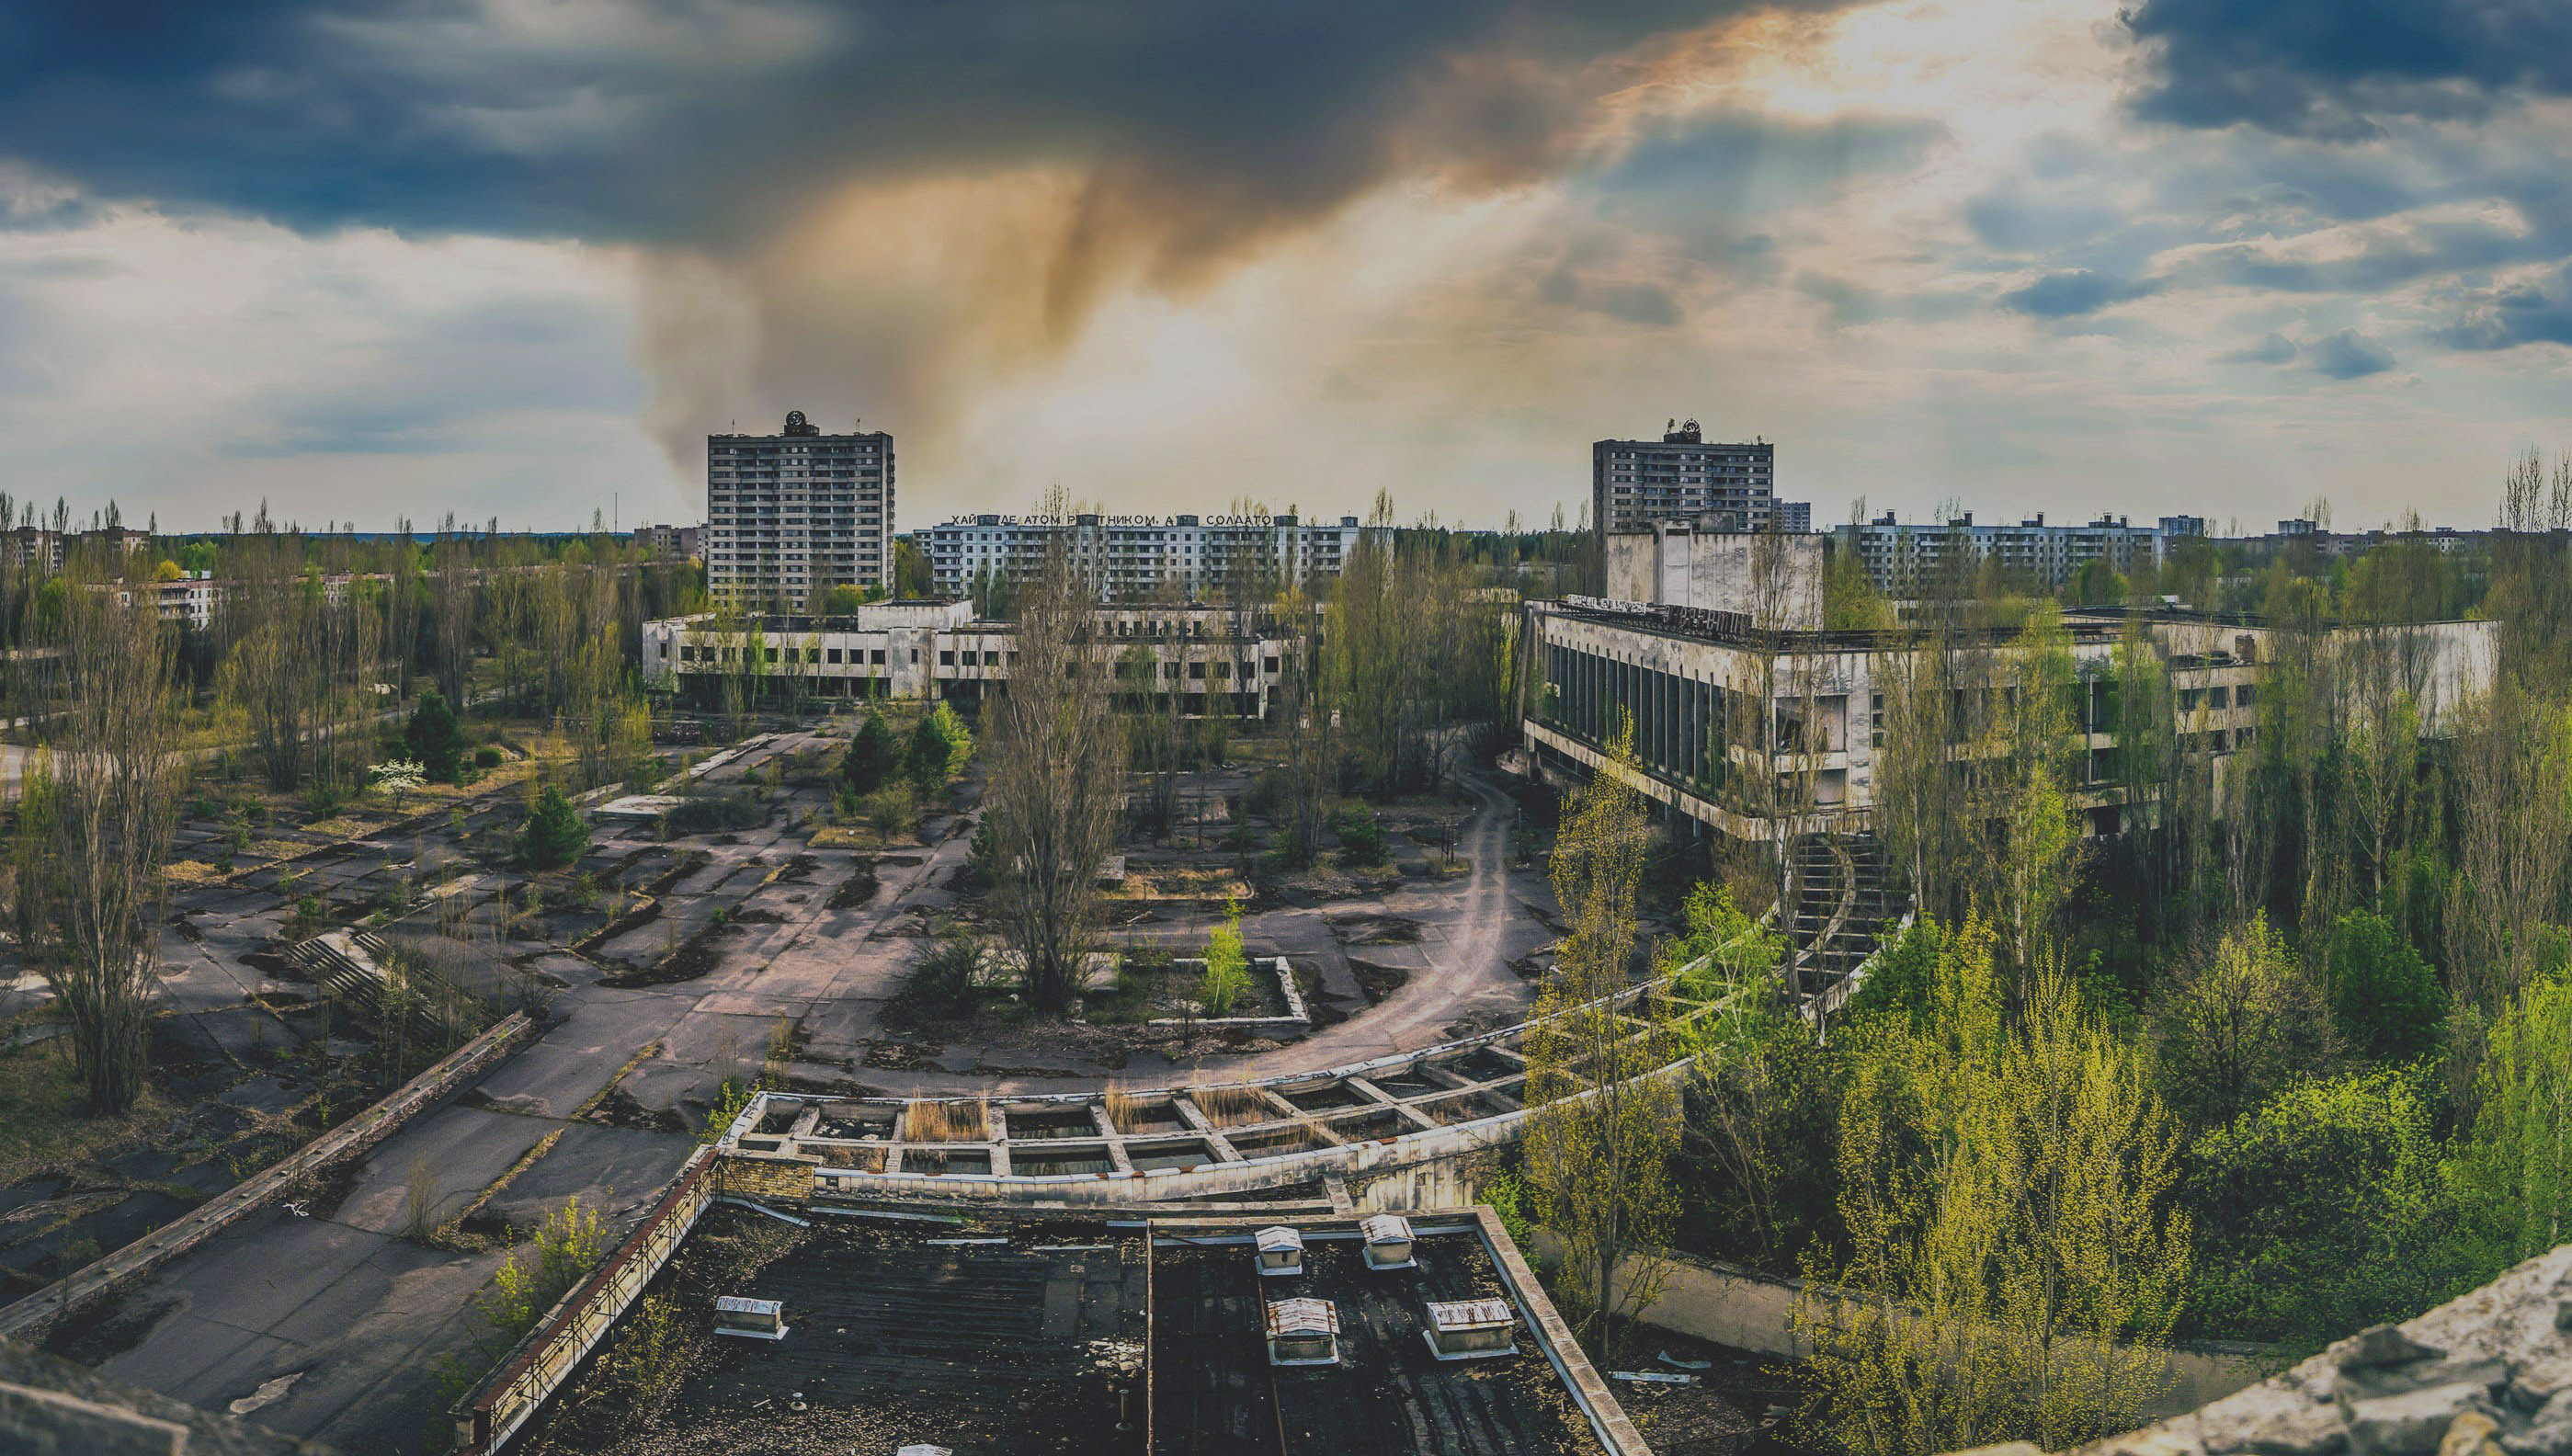 Chernobyl Zone Tours from Kiev